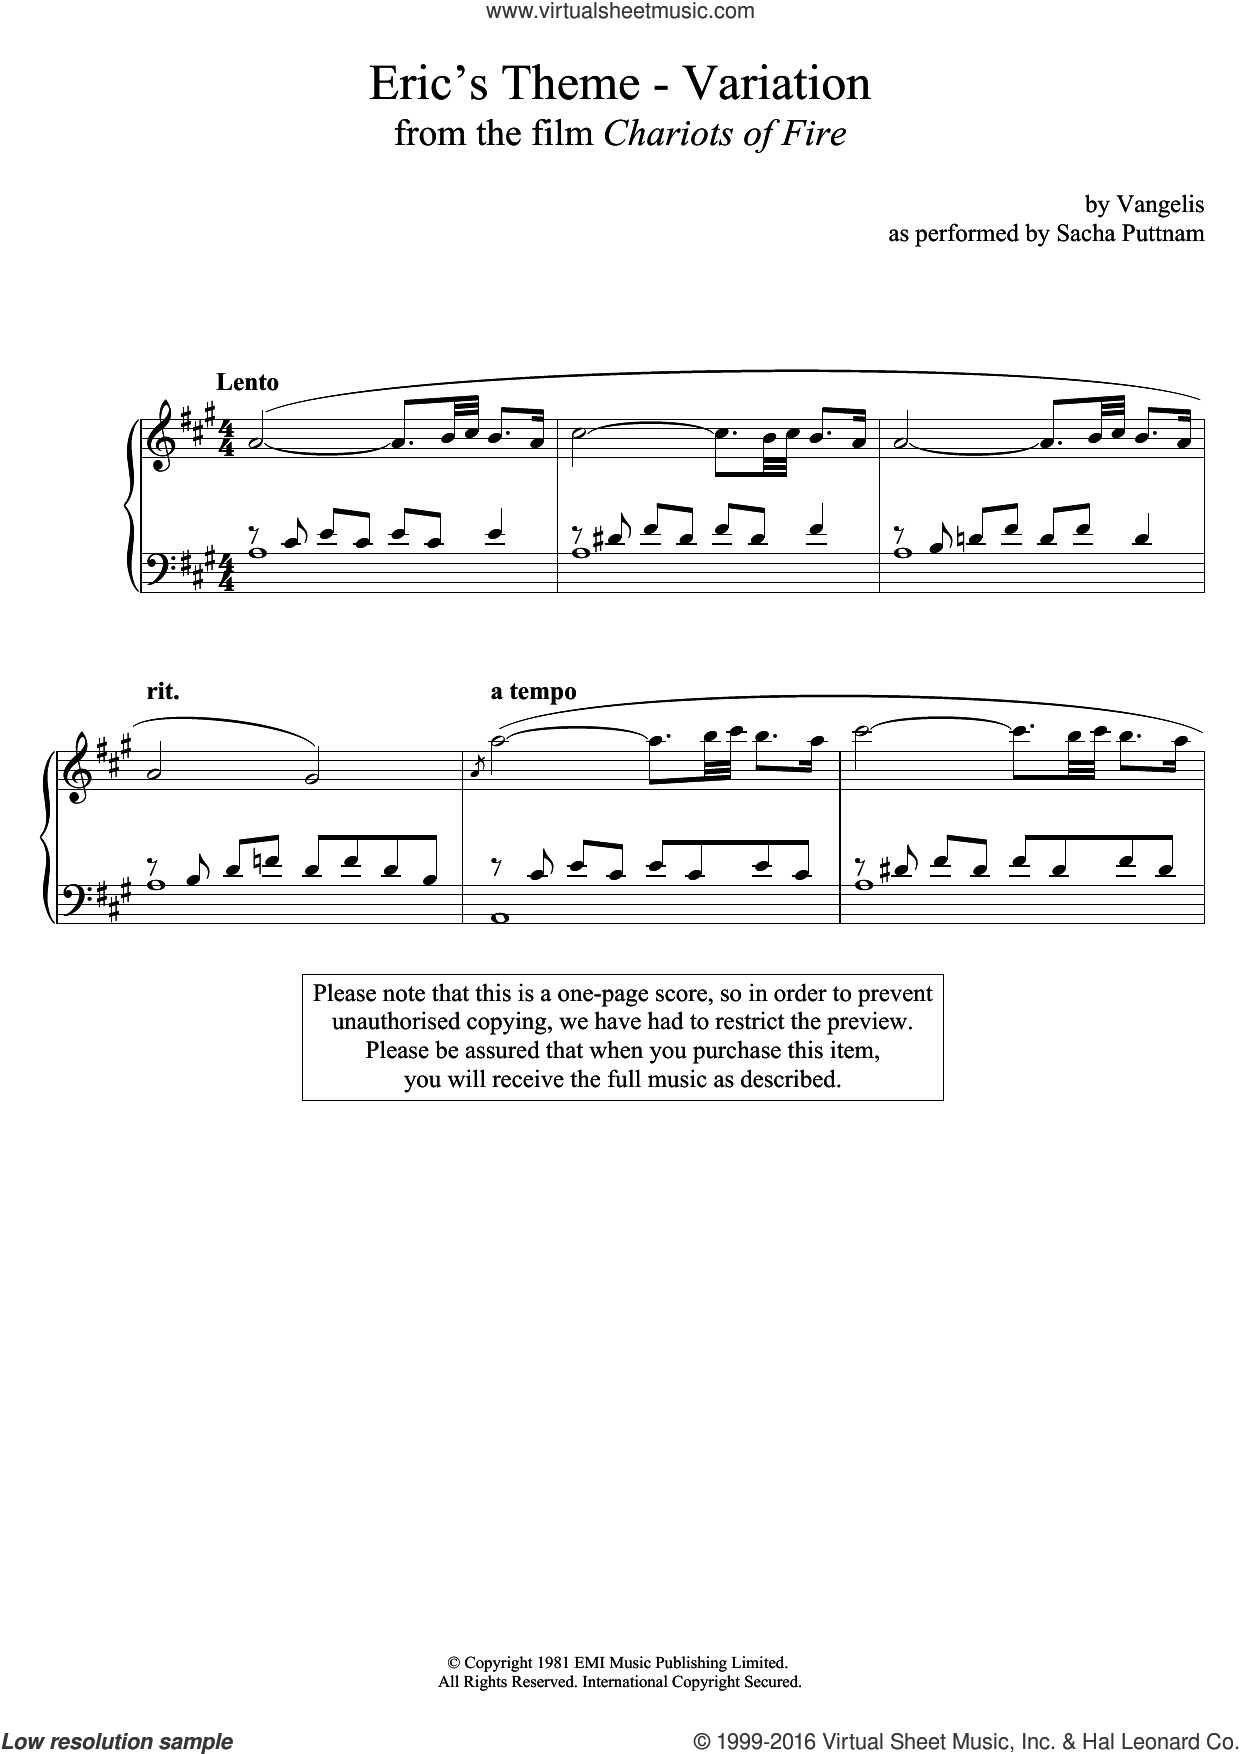 Eric's Theme- Variation (From Chariots Of Fire) (as performed by Sacha Puttnam) sheet music for piano solo by Vangelis and Sacha Puttnam. Score Image Preview.